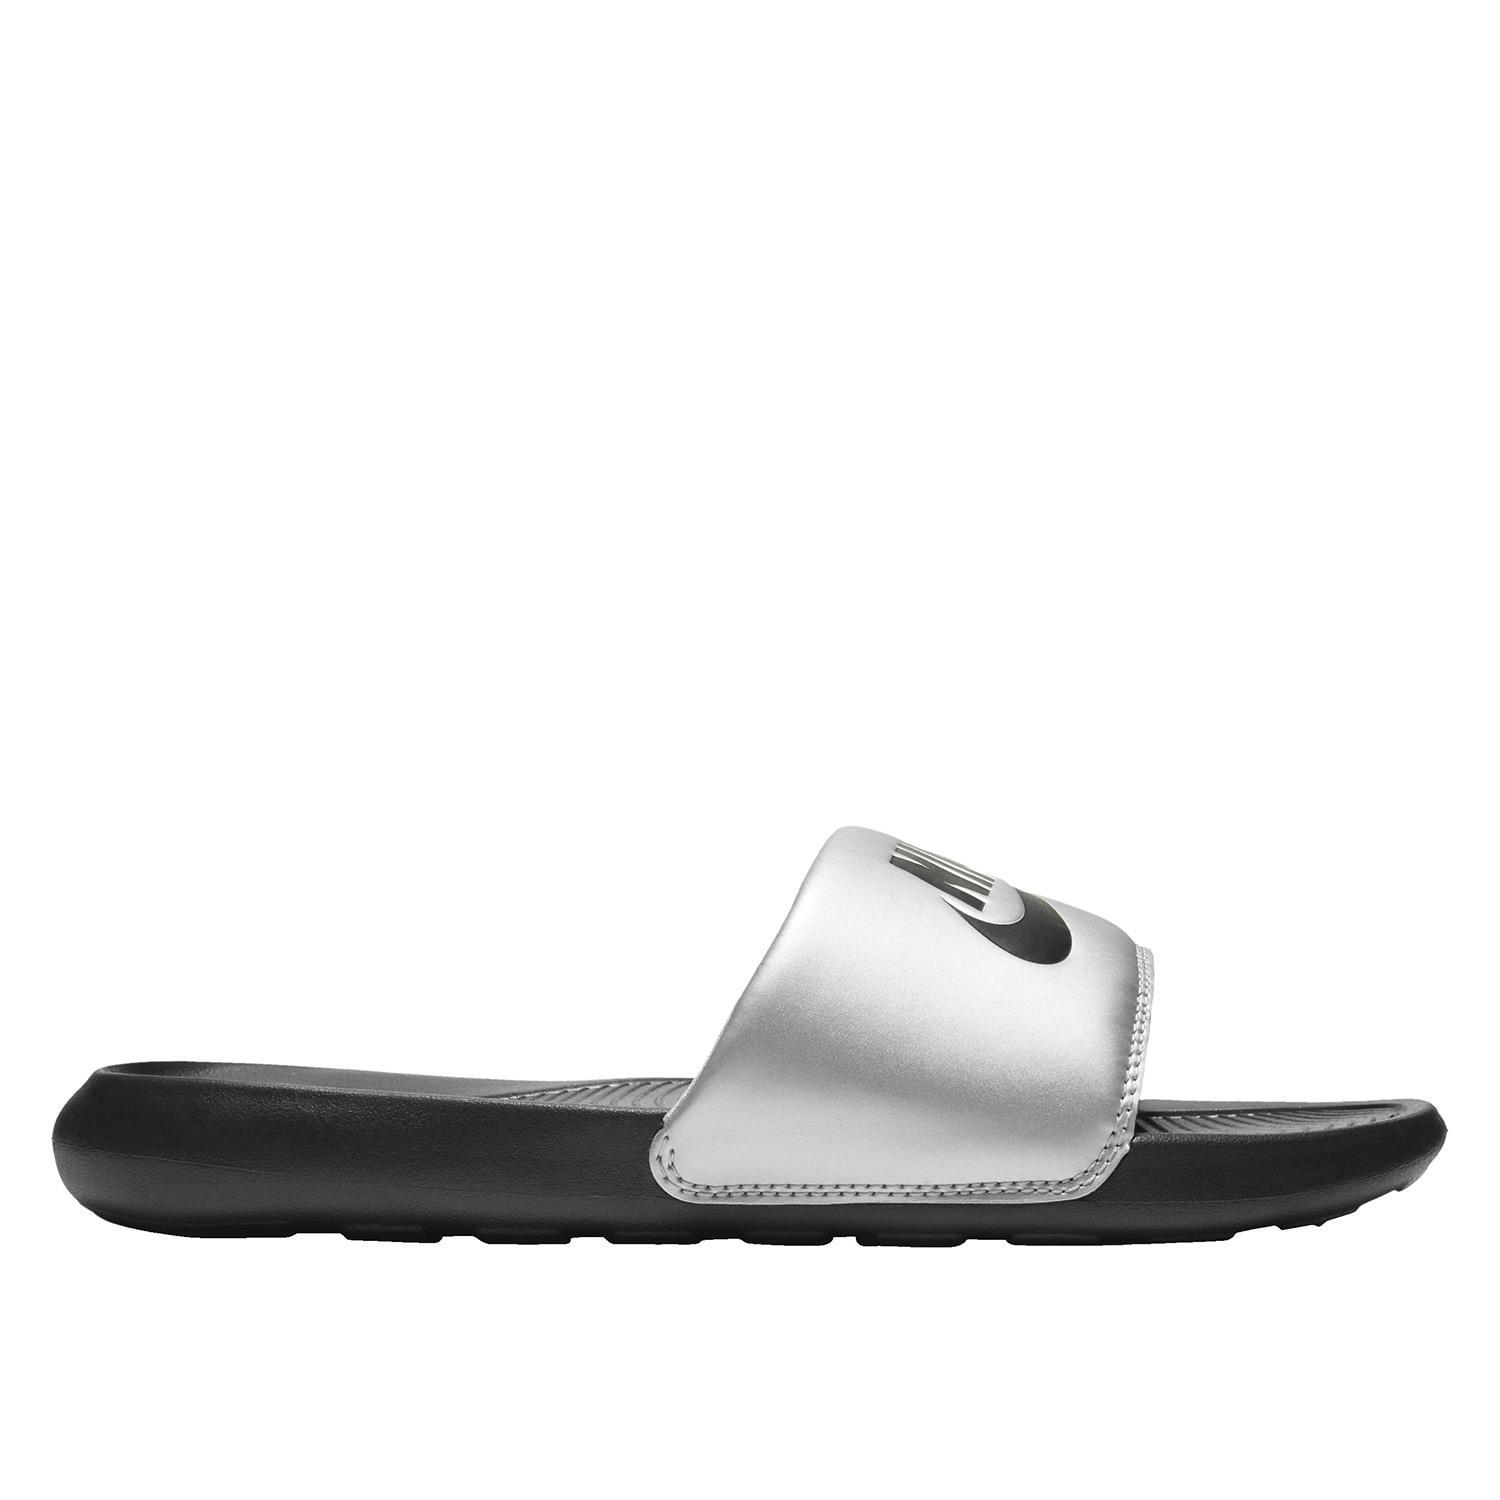 Nike Victori One Slides - Black/Black-Metallic Silver SP-Footwear-Slides Nike